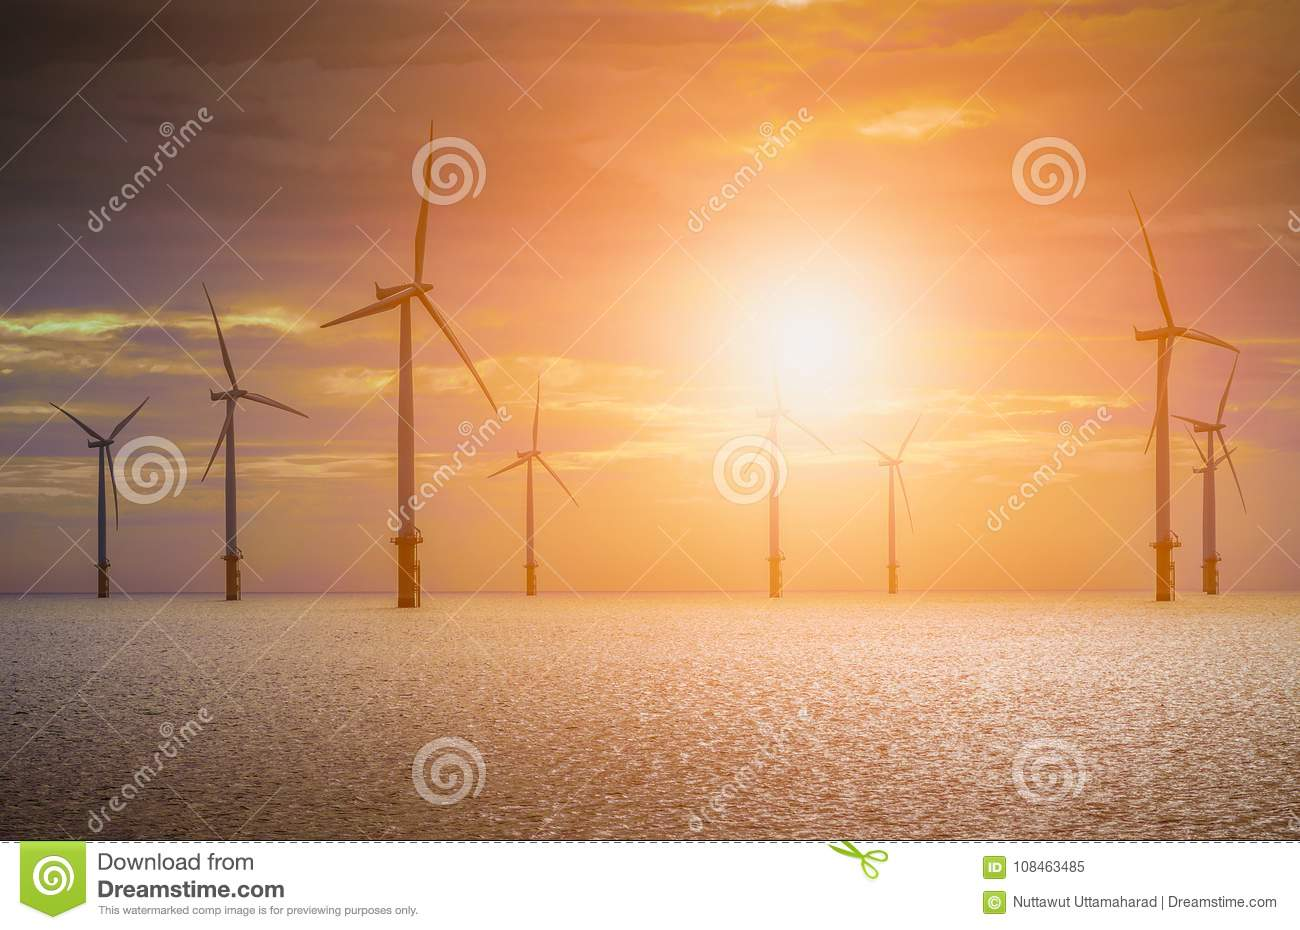 Offshore Wind Turbine in a Wind farm under construction off coast of England at sunset.